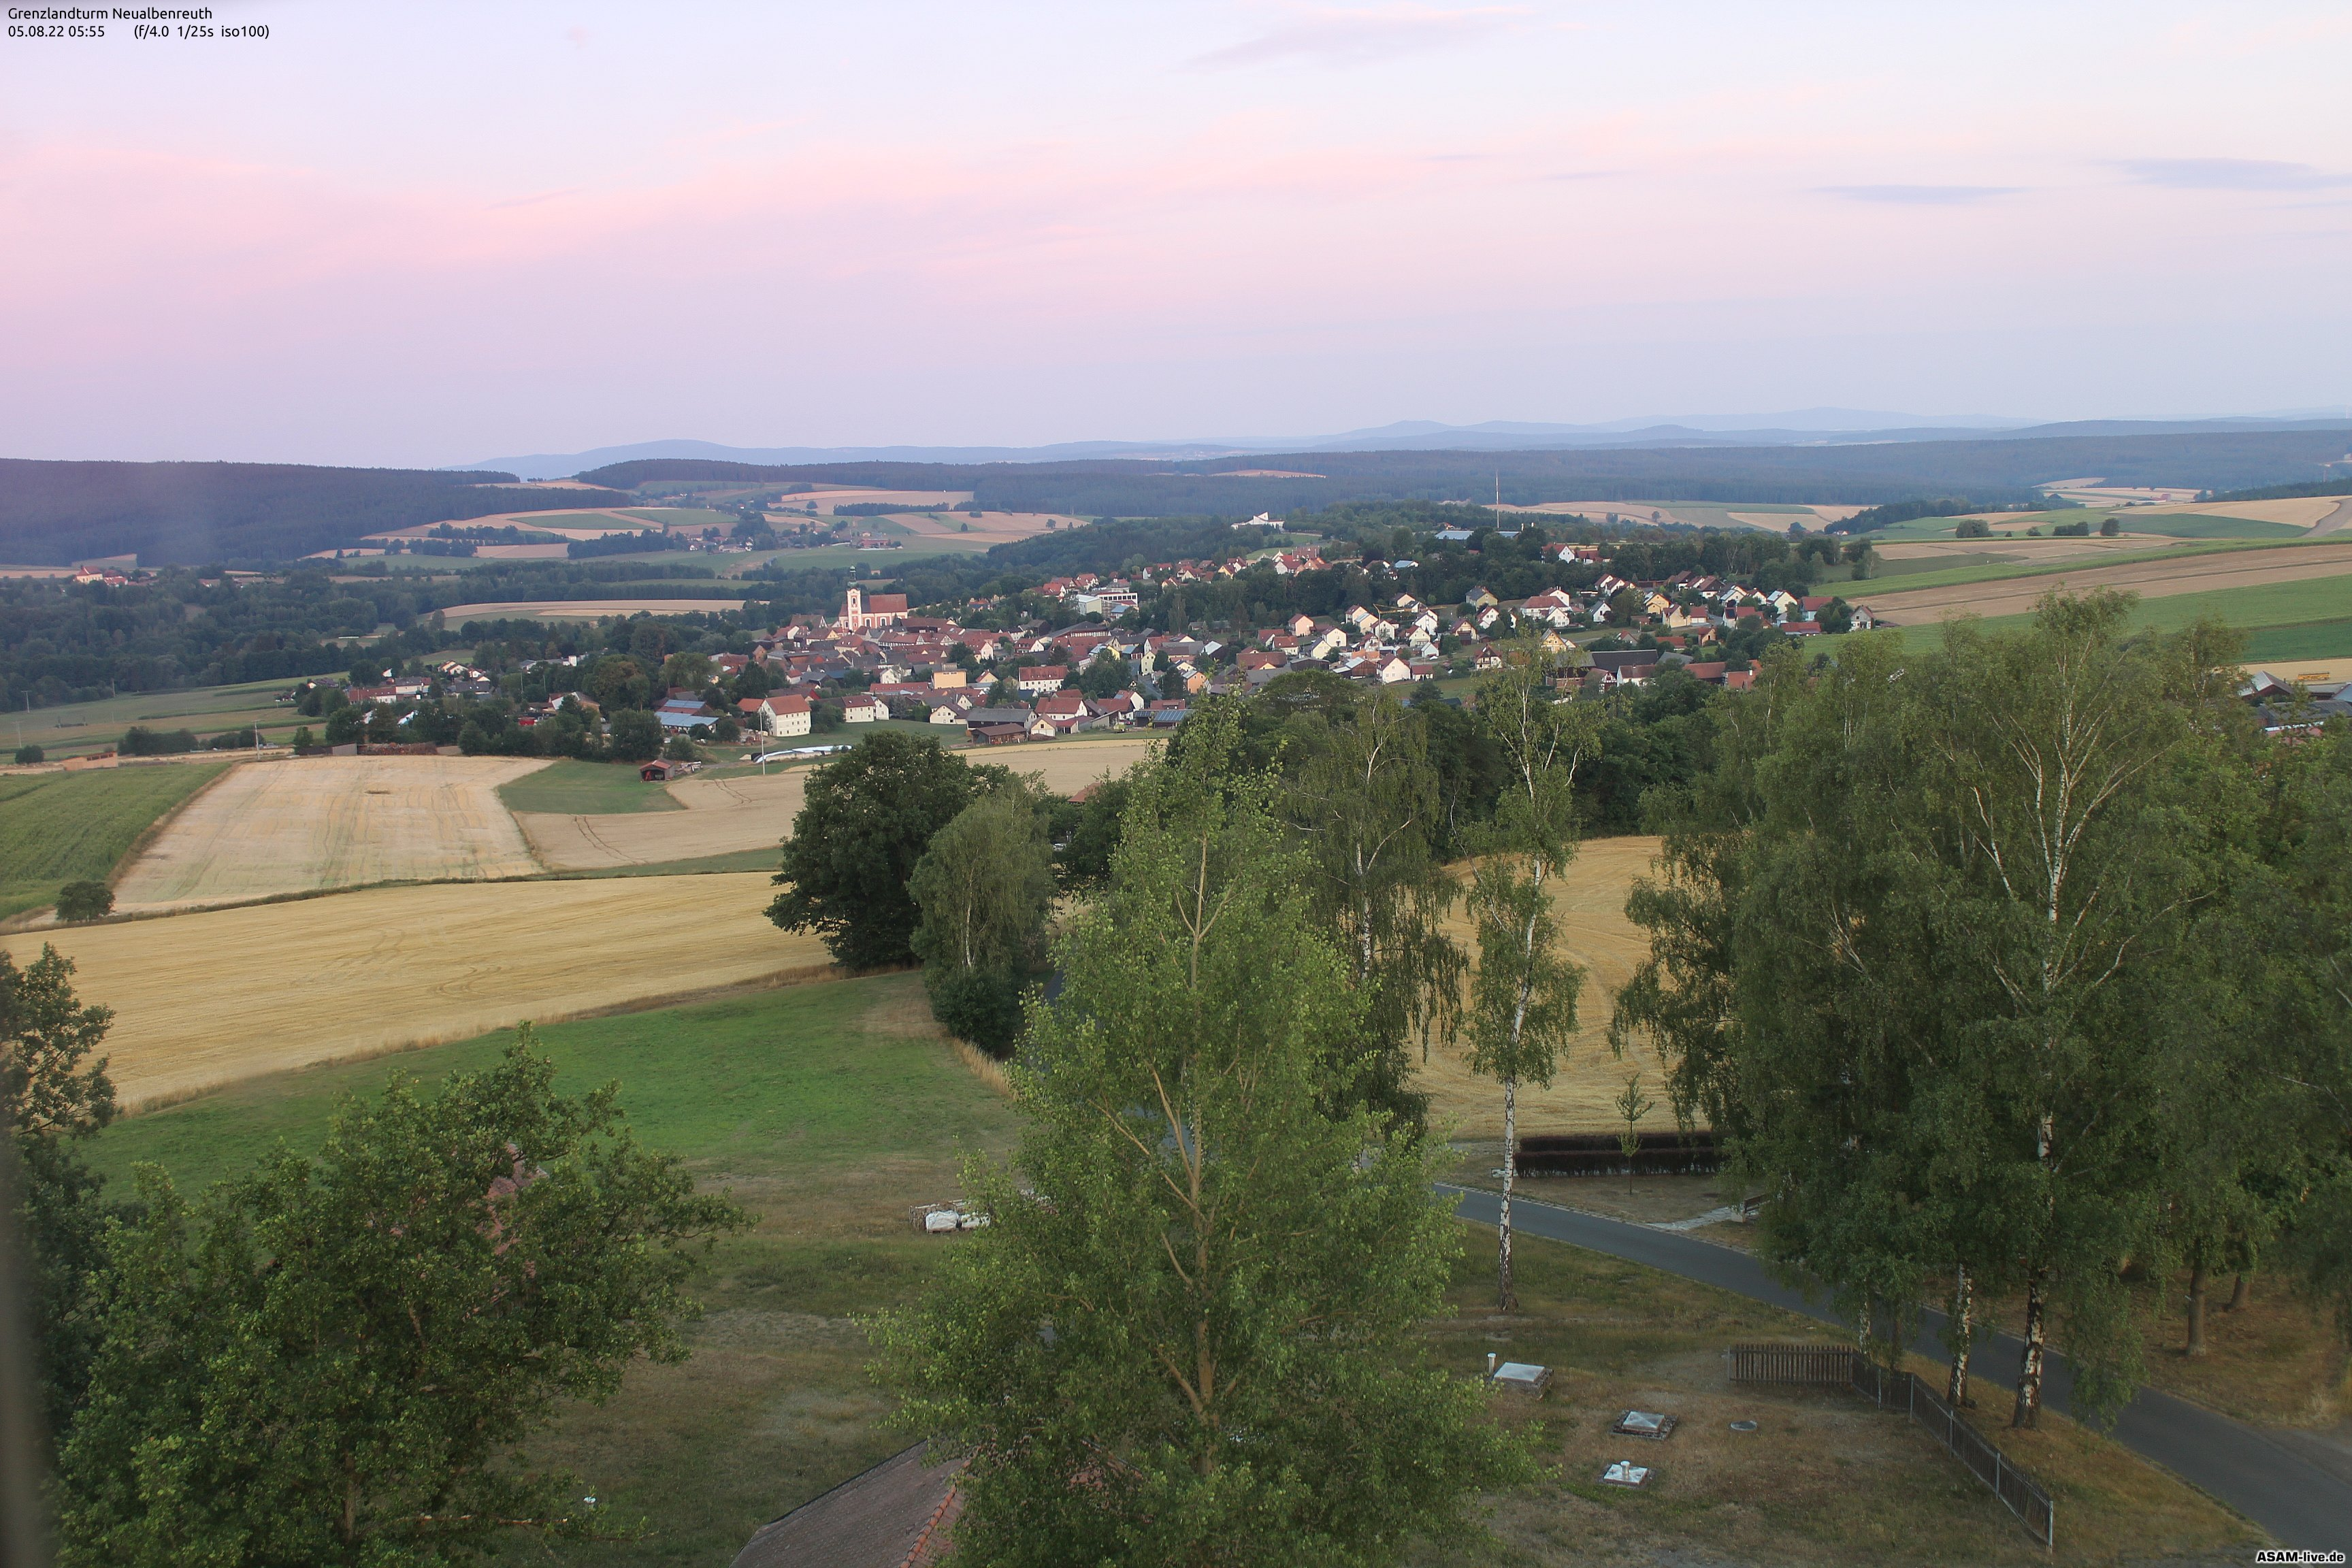 WebCam am Grenzlandturm